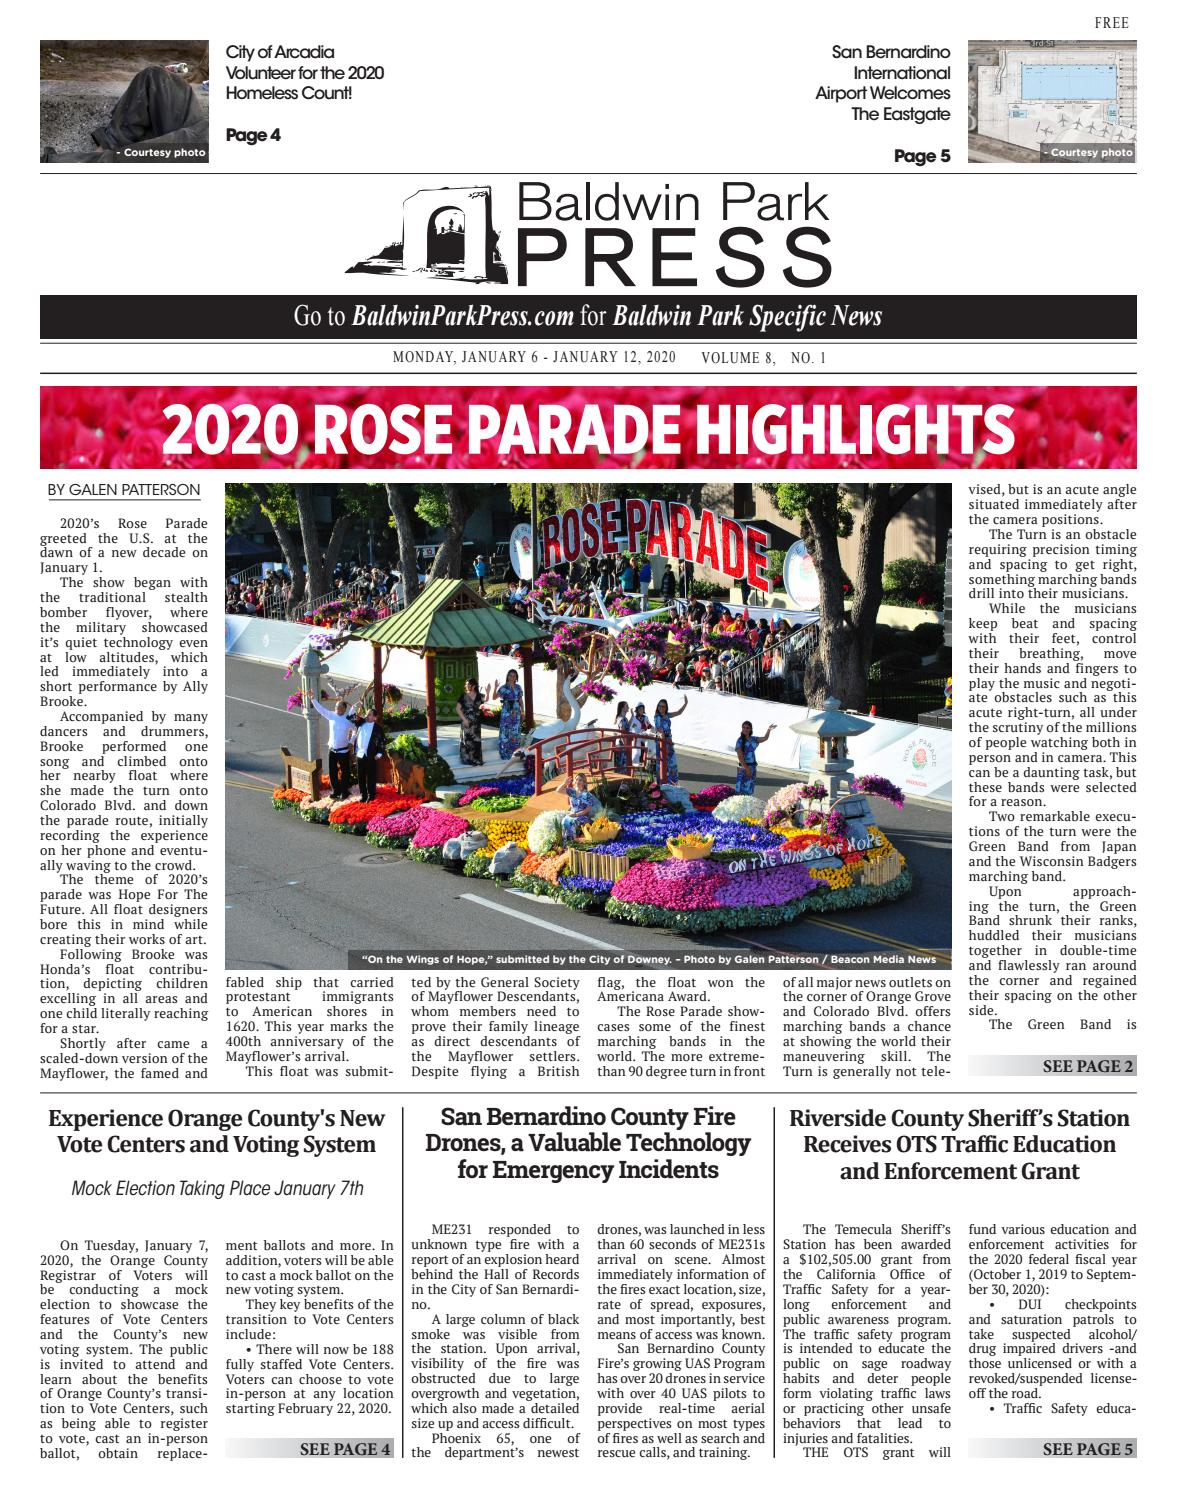 Checkpoints In Downey Area Christmas 2020 Baldwin Park Press   1/6/2020 by Beacon Media News   issuu